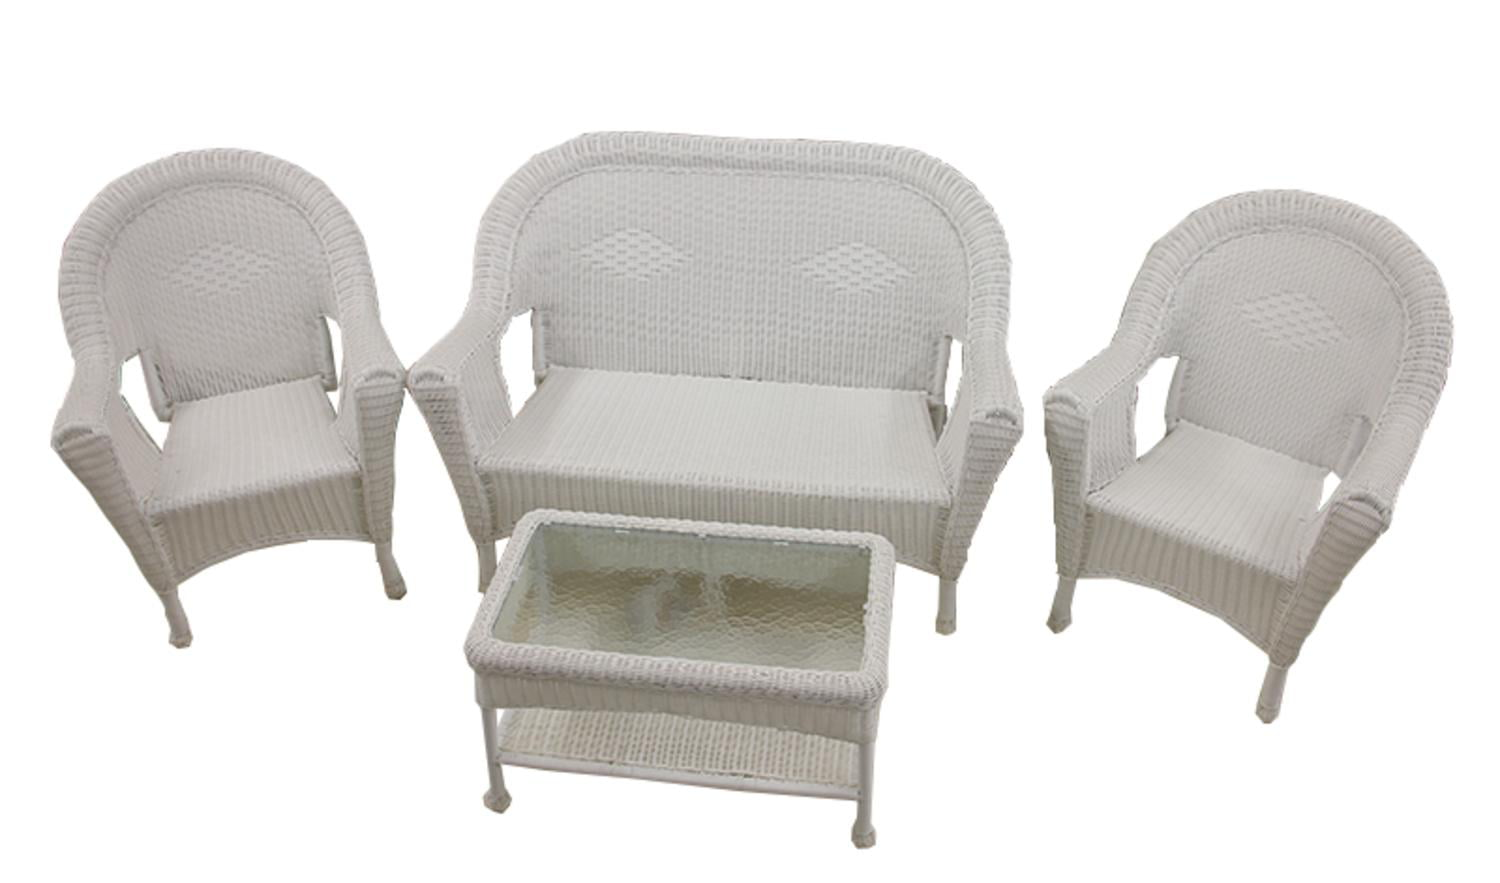 white resin wicker patio chairs. 4-Piece White Resin Wicker Patio Furniture Set- 2 Chairs, Loveseat \u0026 Table - Walmart.com Chairs